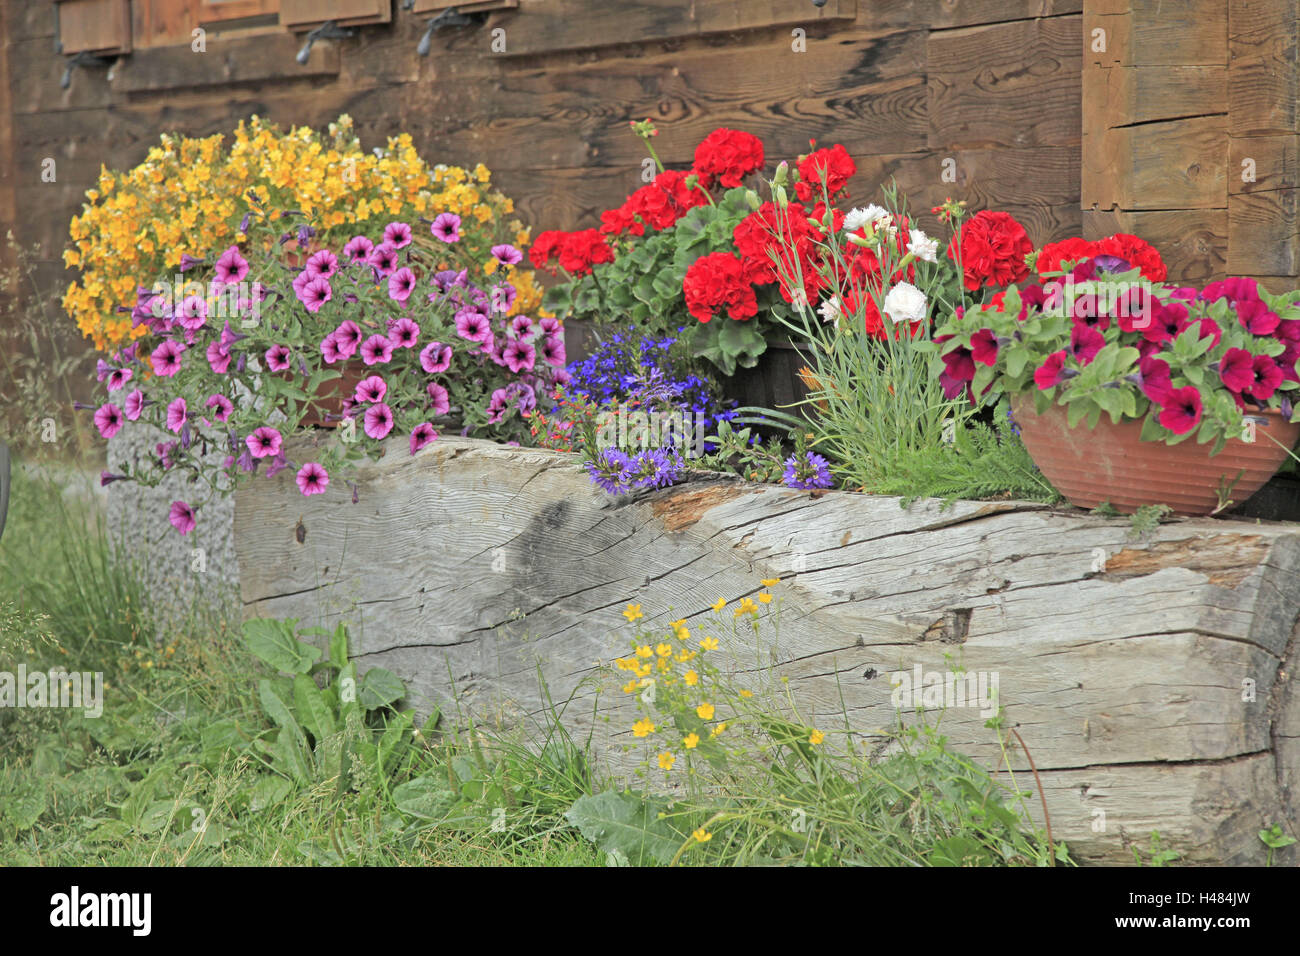 Window box, flowers, brightly, floral decoration, alpine hut, alp, wooden house, wooden wall, flower trough, wooden, - Stock Image